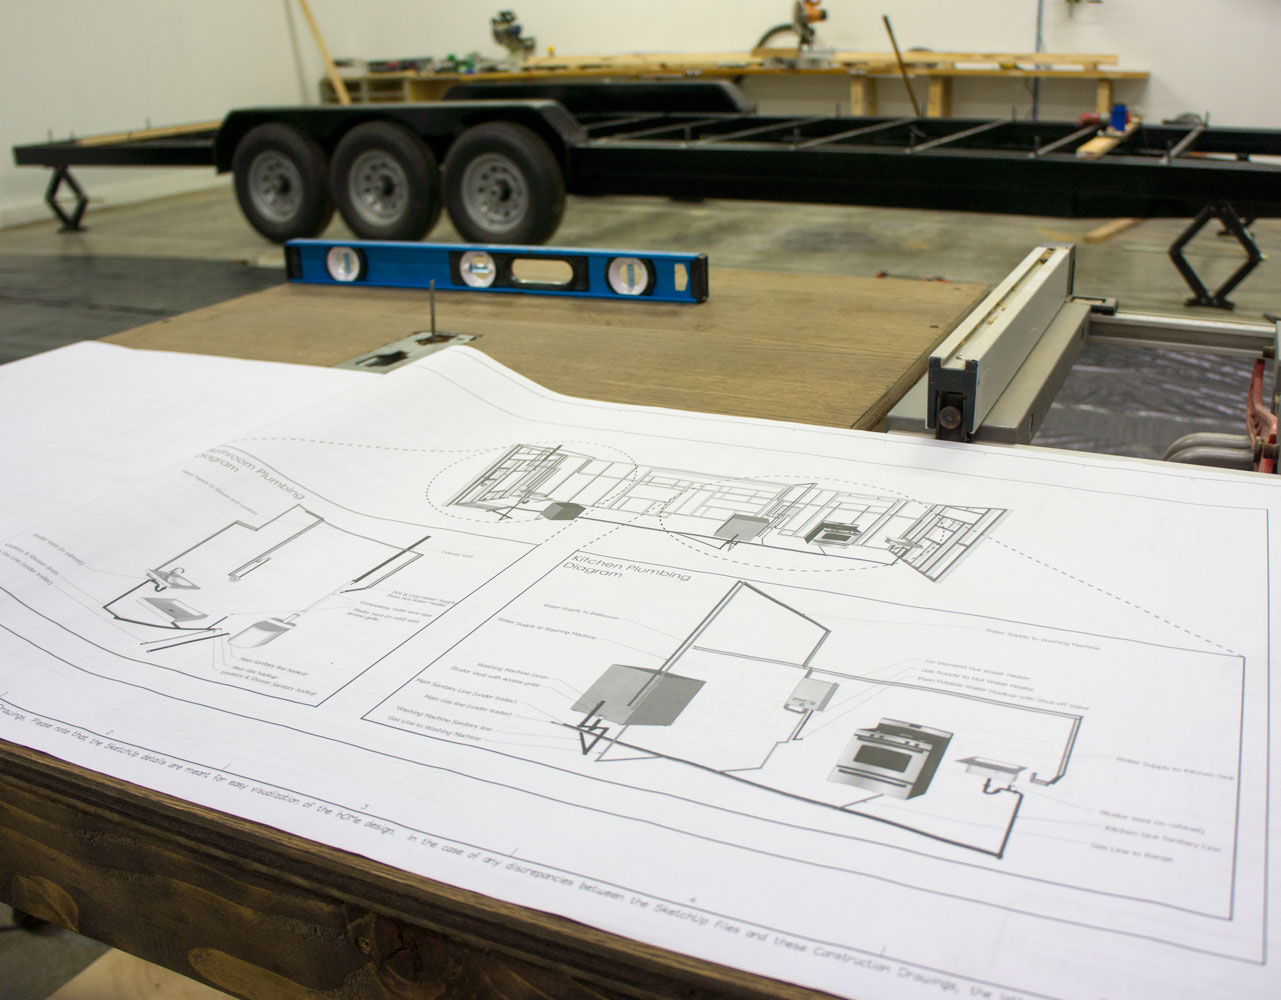 Plans for the construction of a custom tiny home, with the trailer for the tiny house in the background